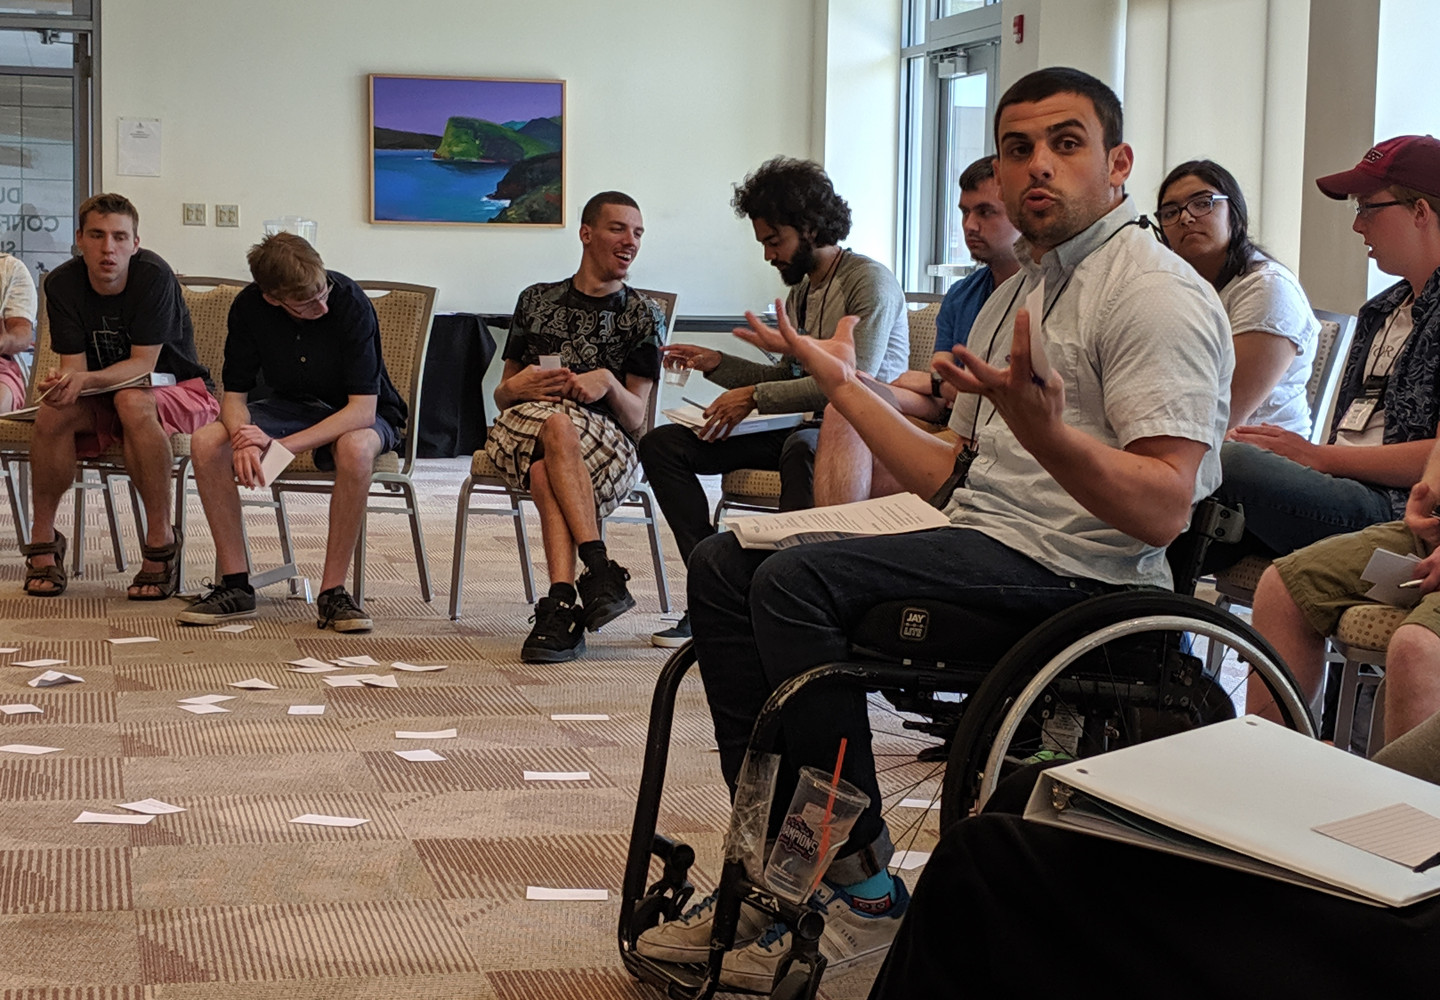 White man in a wheelchair leading a group exercise with a class